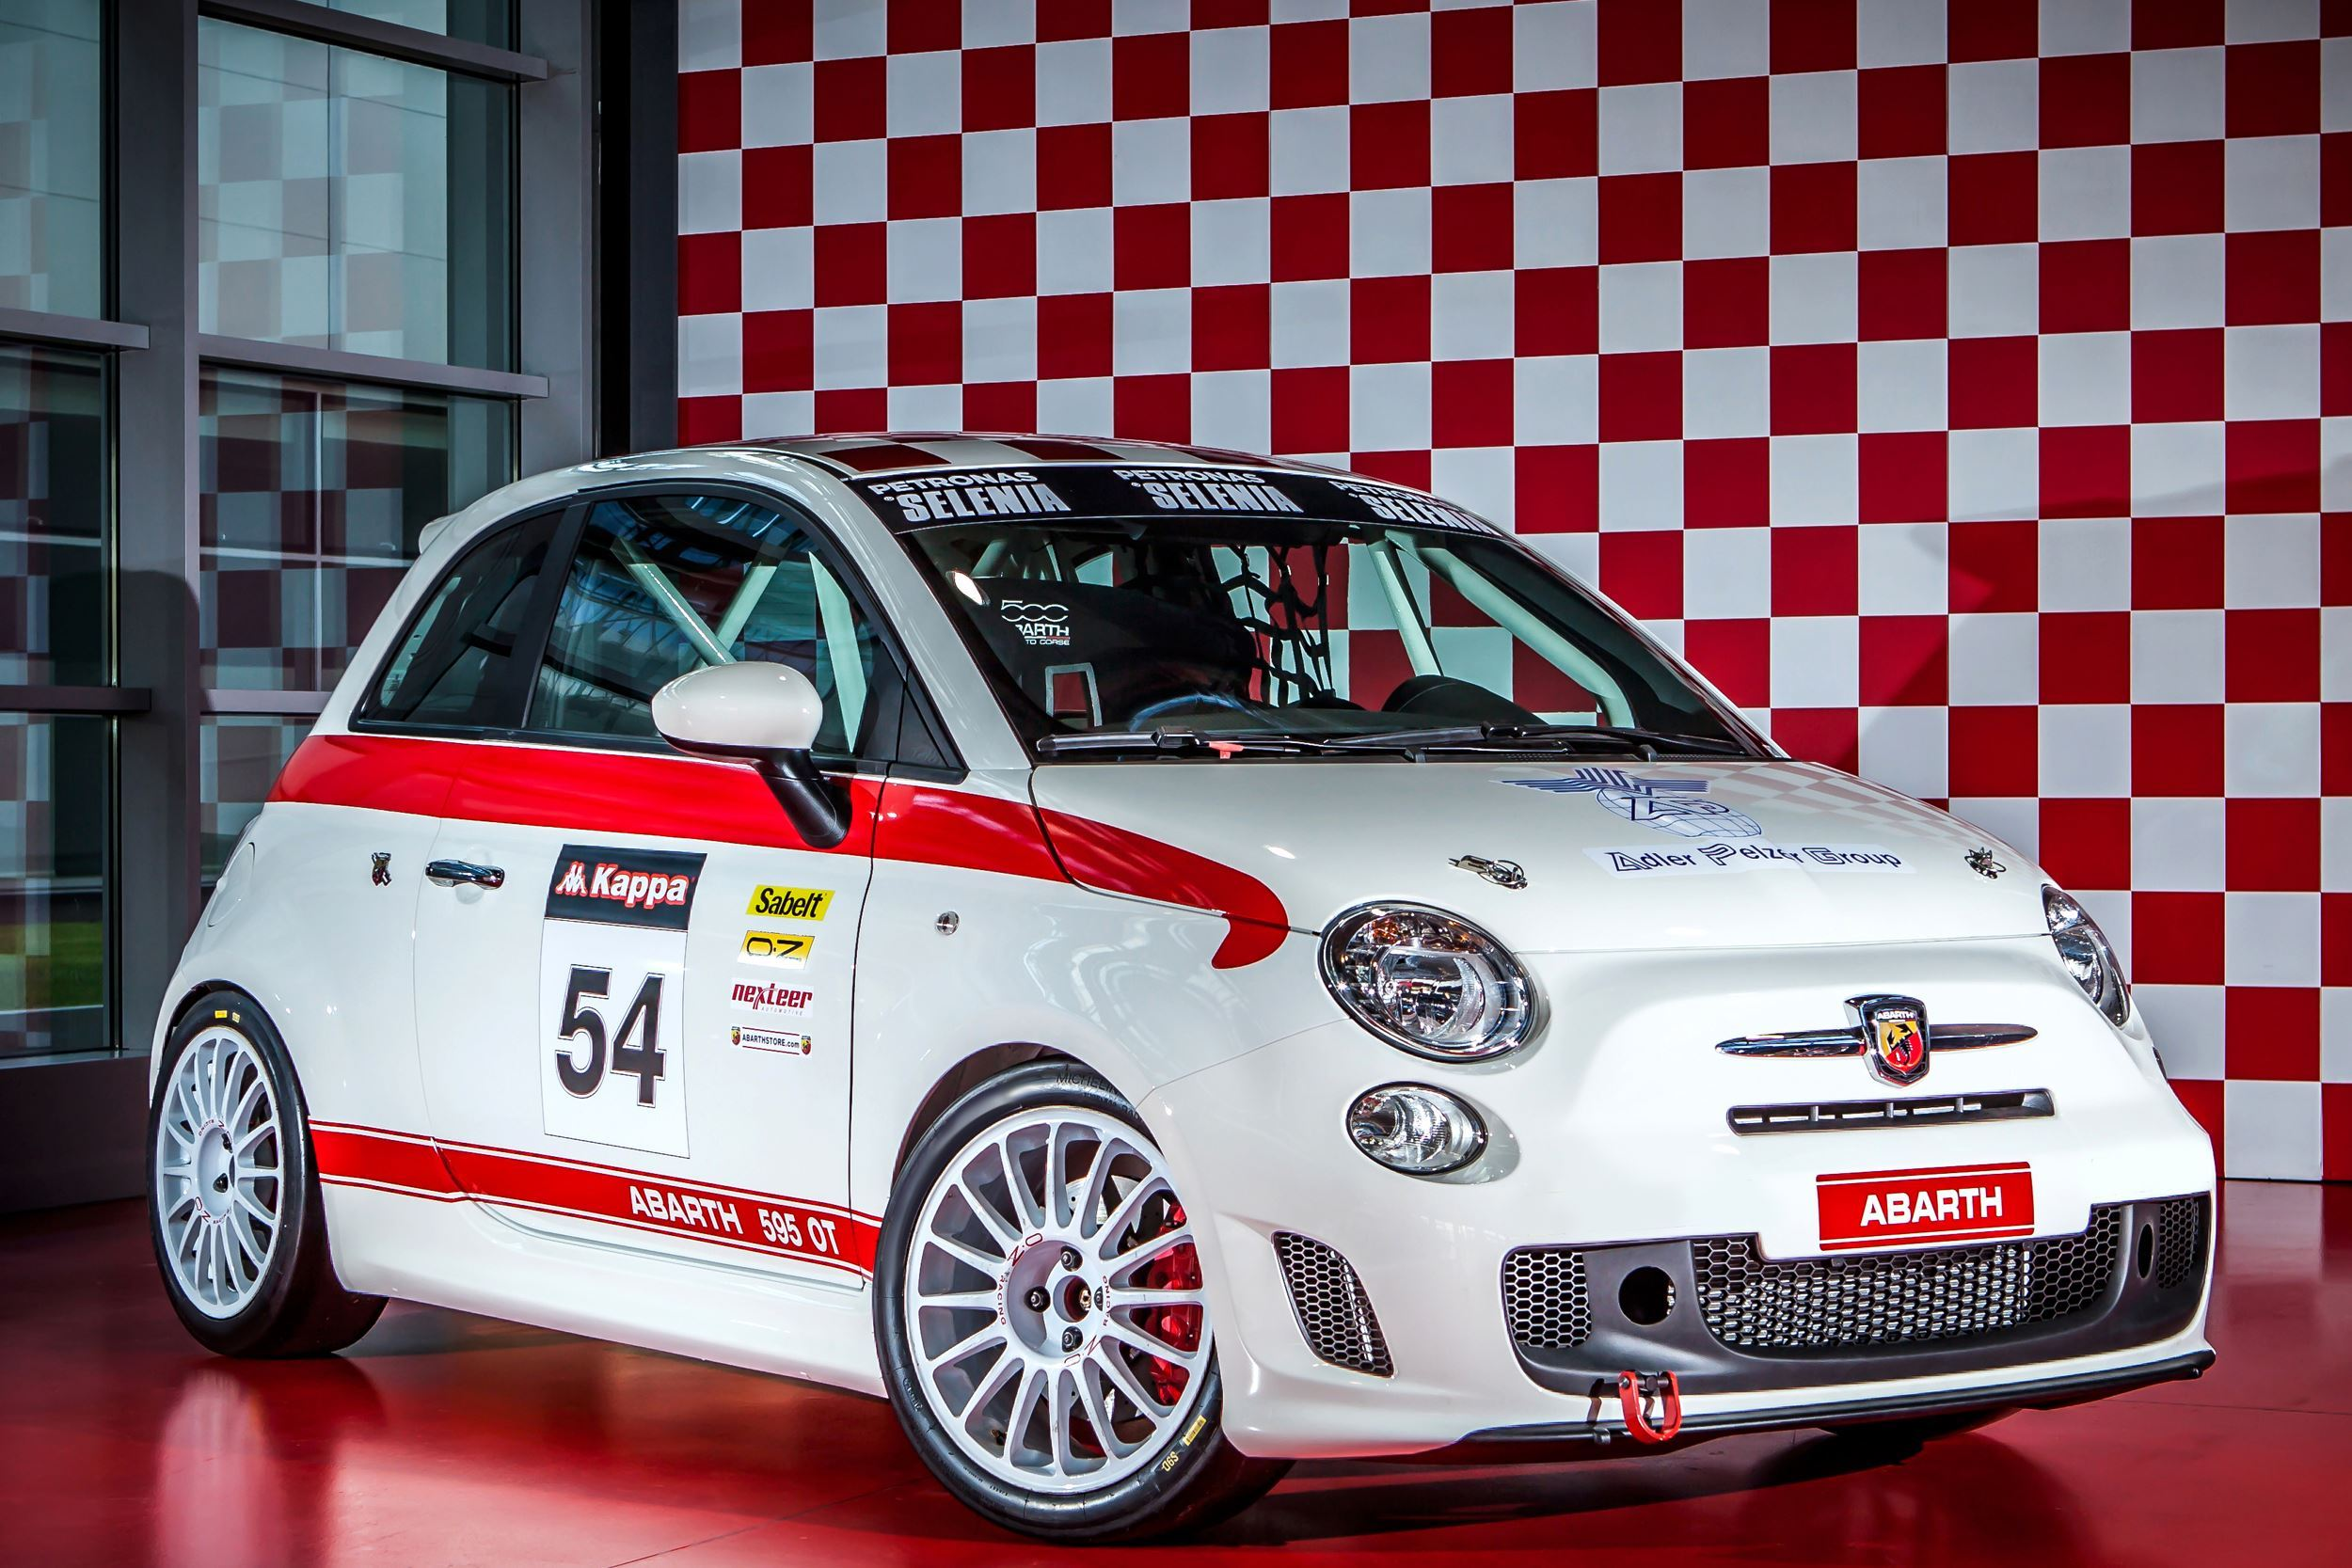 160310_abarth_595-ot_01_copia2.jpg